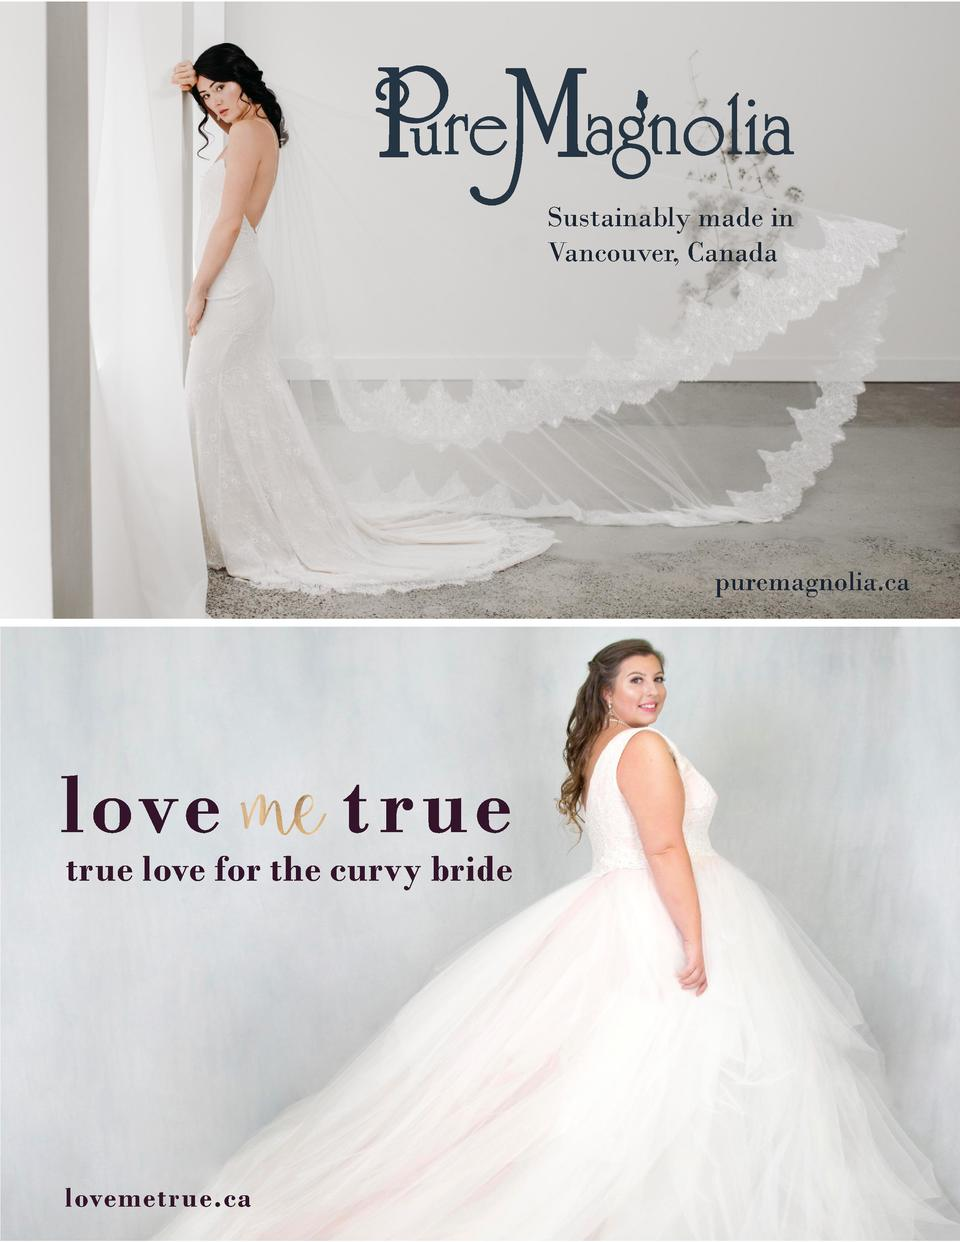 Sustainably made in Vancouver, Canada  puremagnolia.ca  true love for the curvy bride  lovemetrue.ca